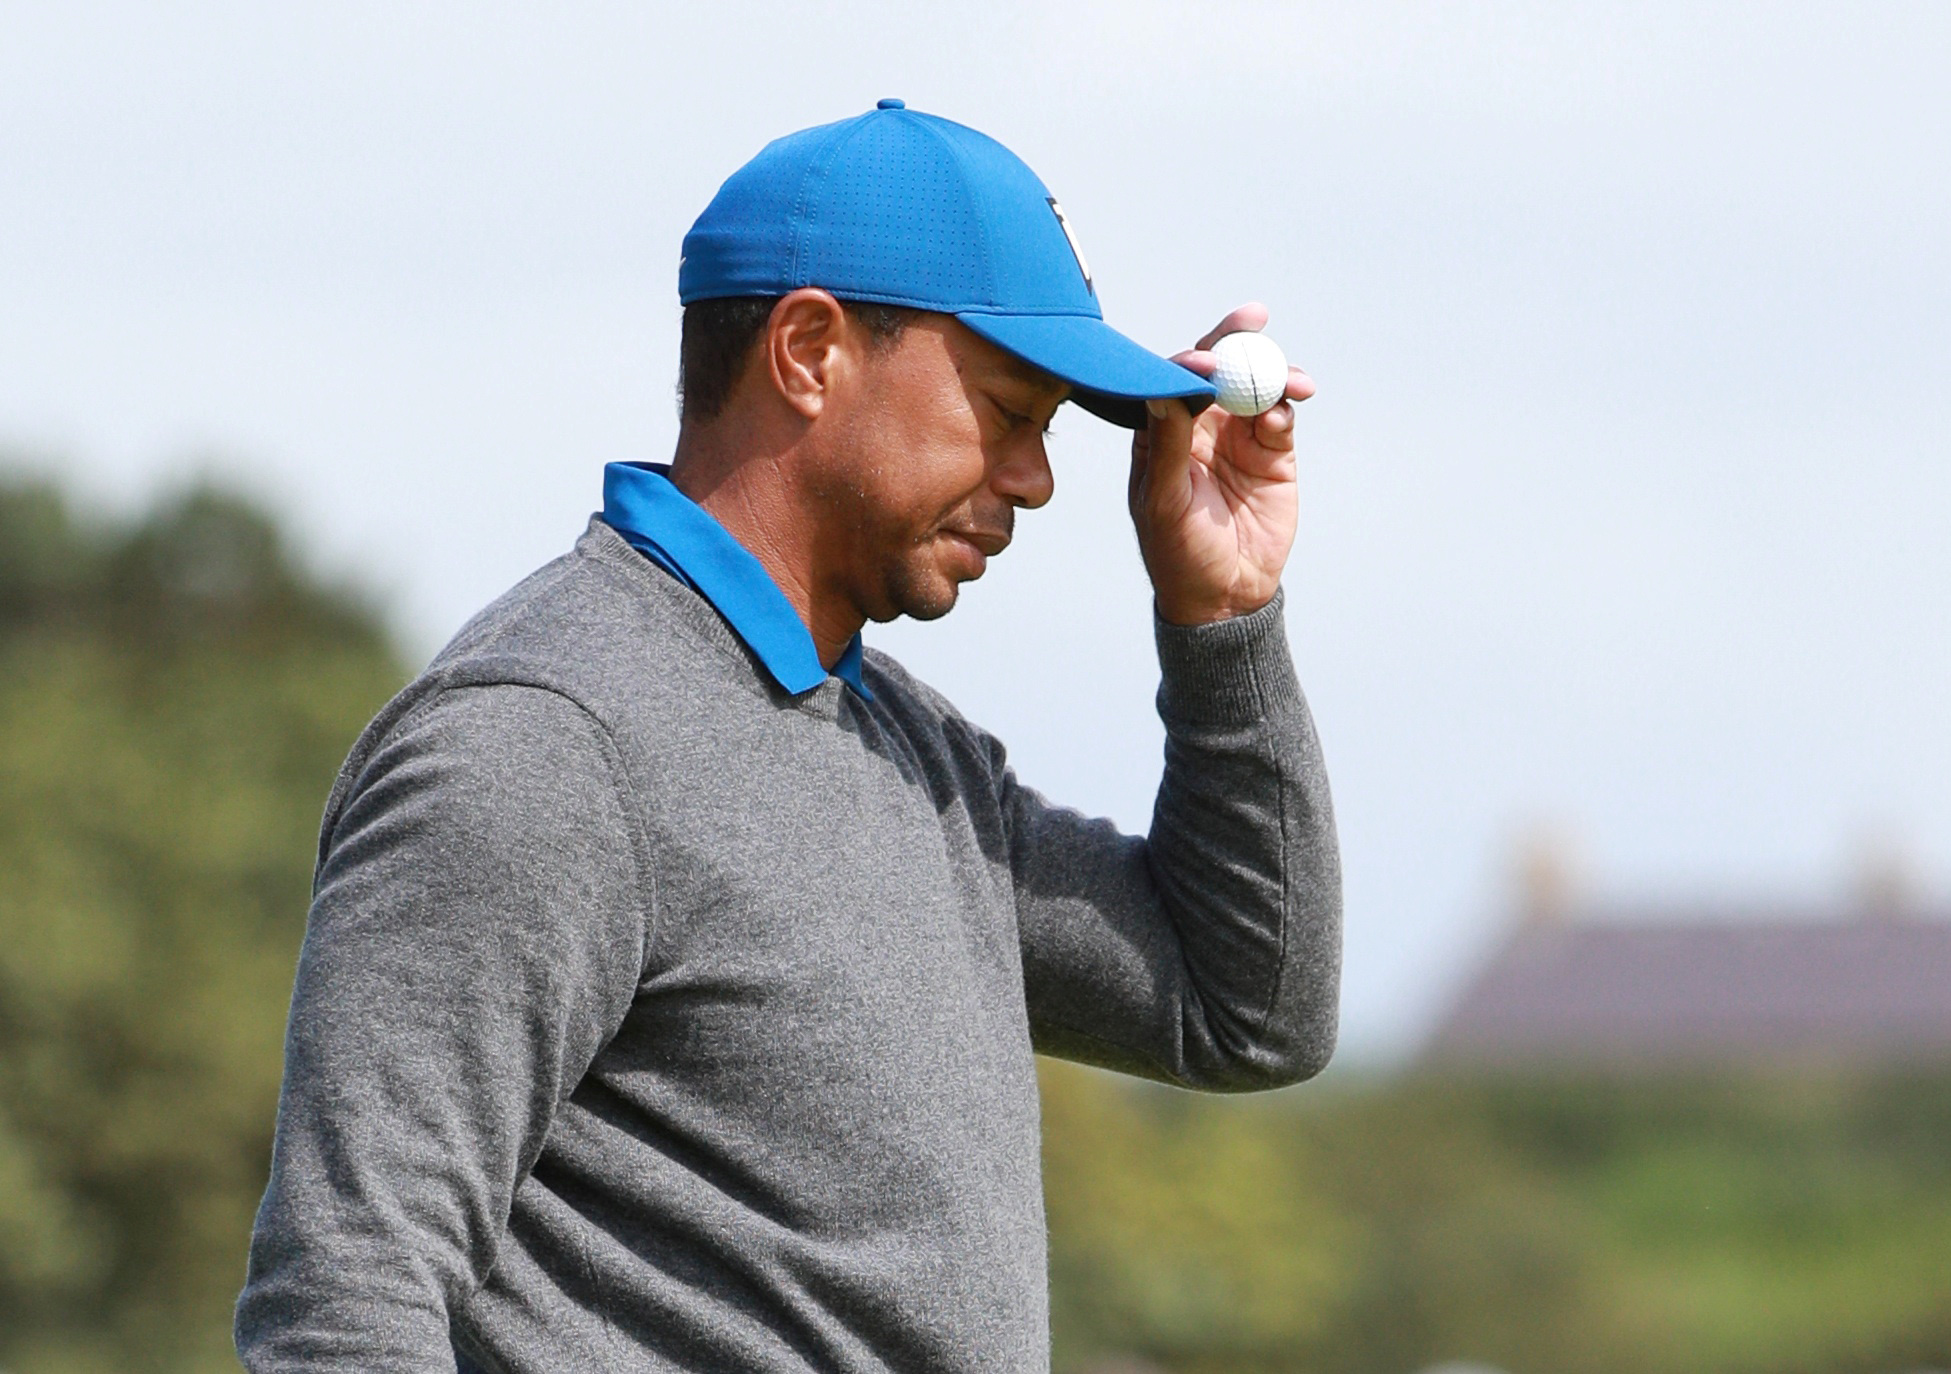 Golf - Tournois majeurs - Open britannique : Tiger Woods absent du final à Portrush